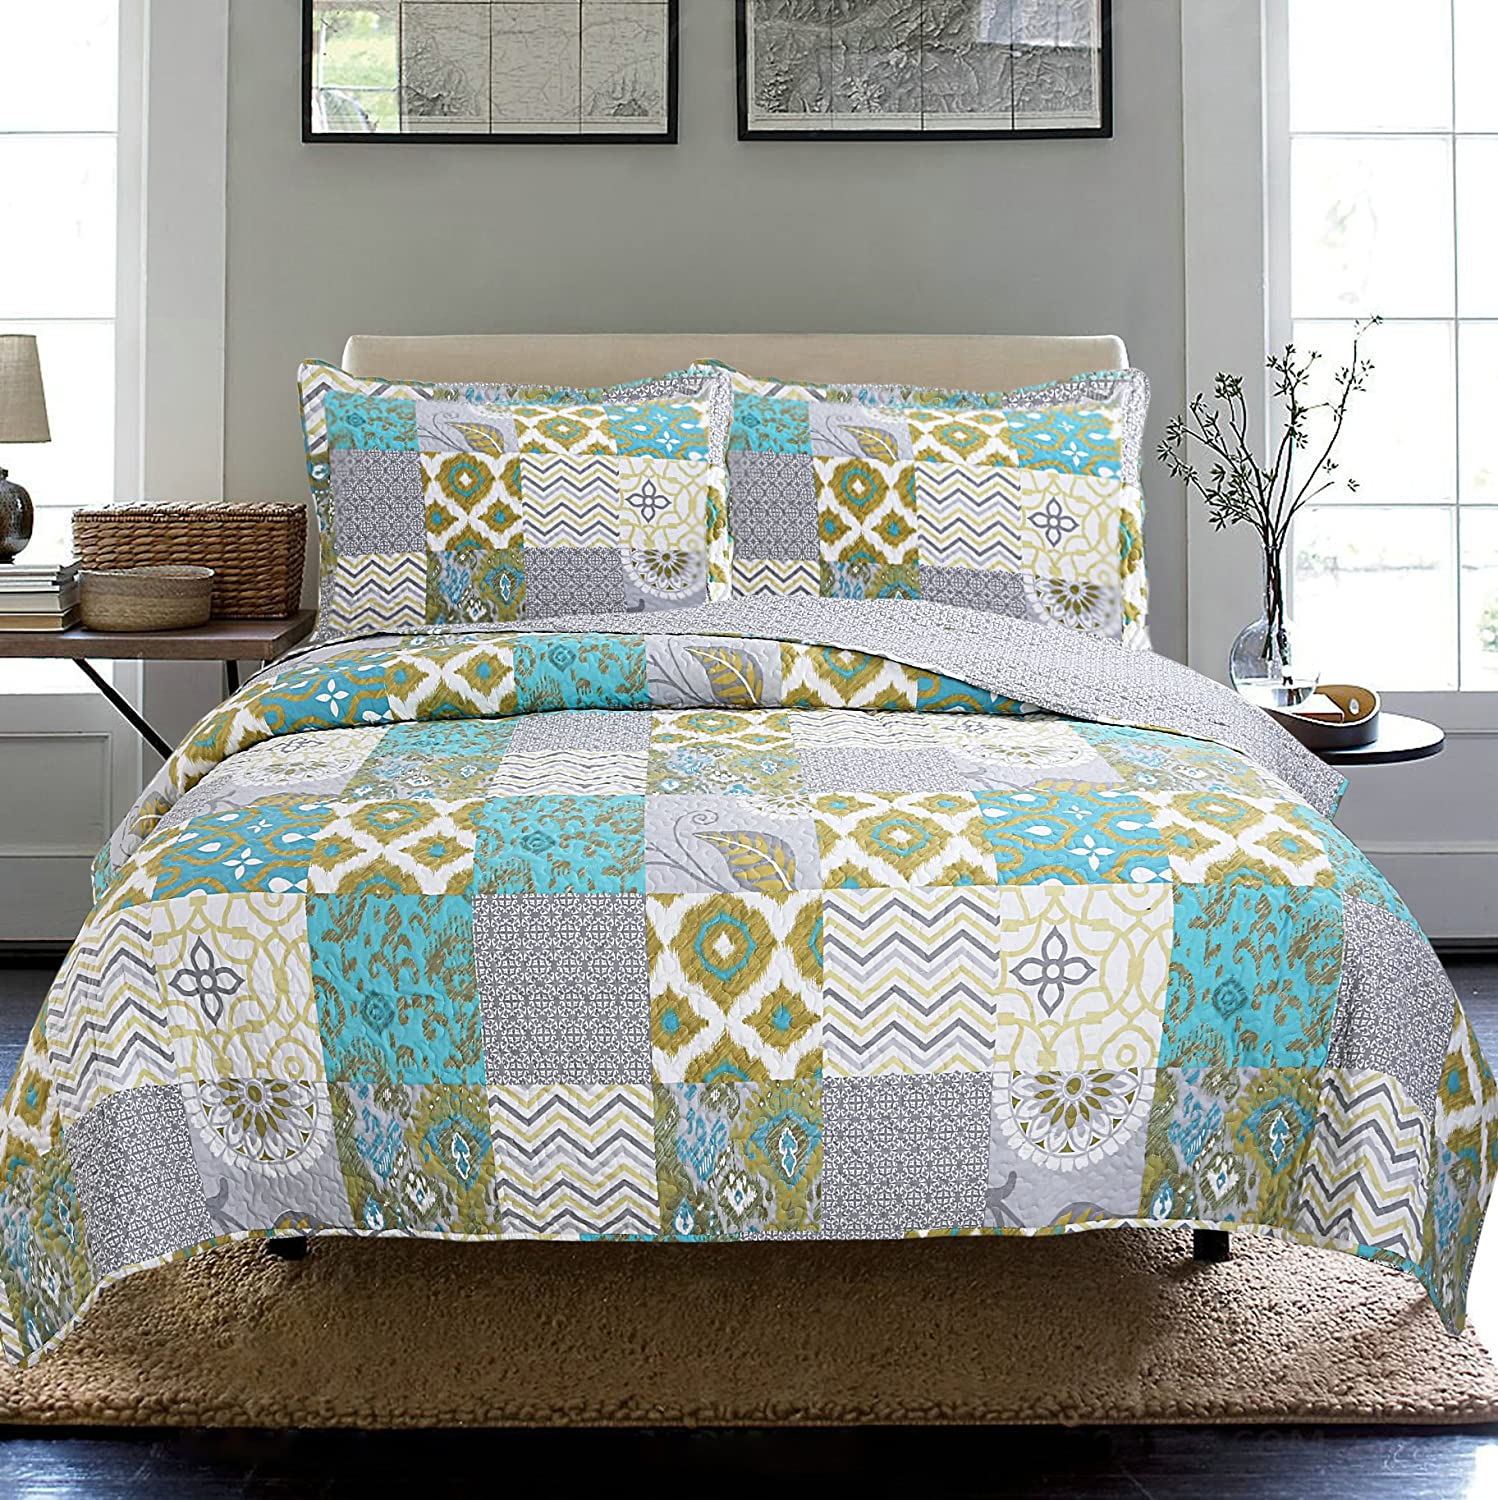 3pc Printed Modern Geometric Bedspread Coverlet (King)